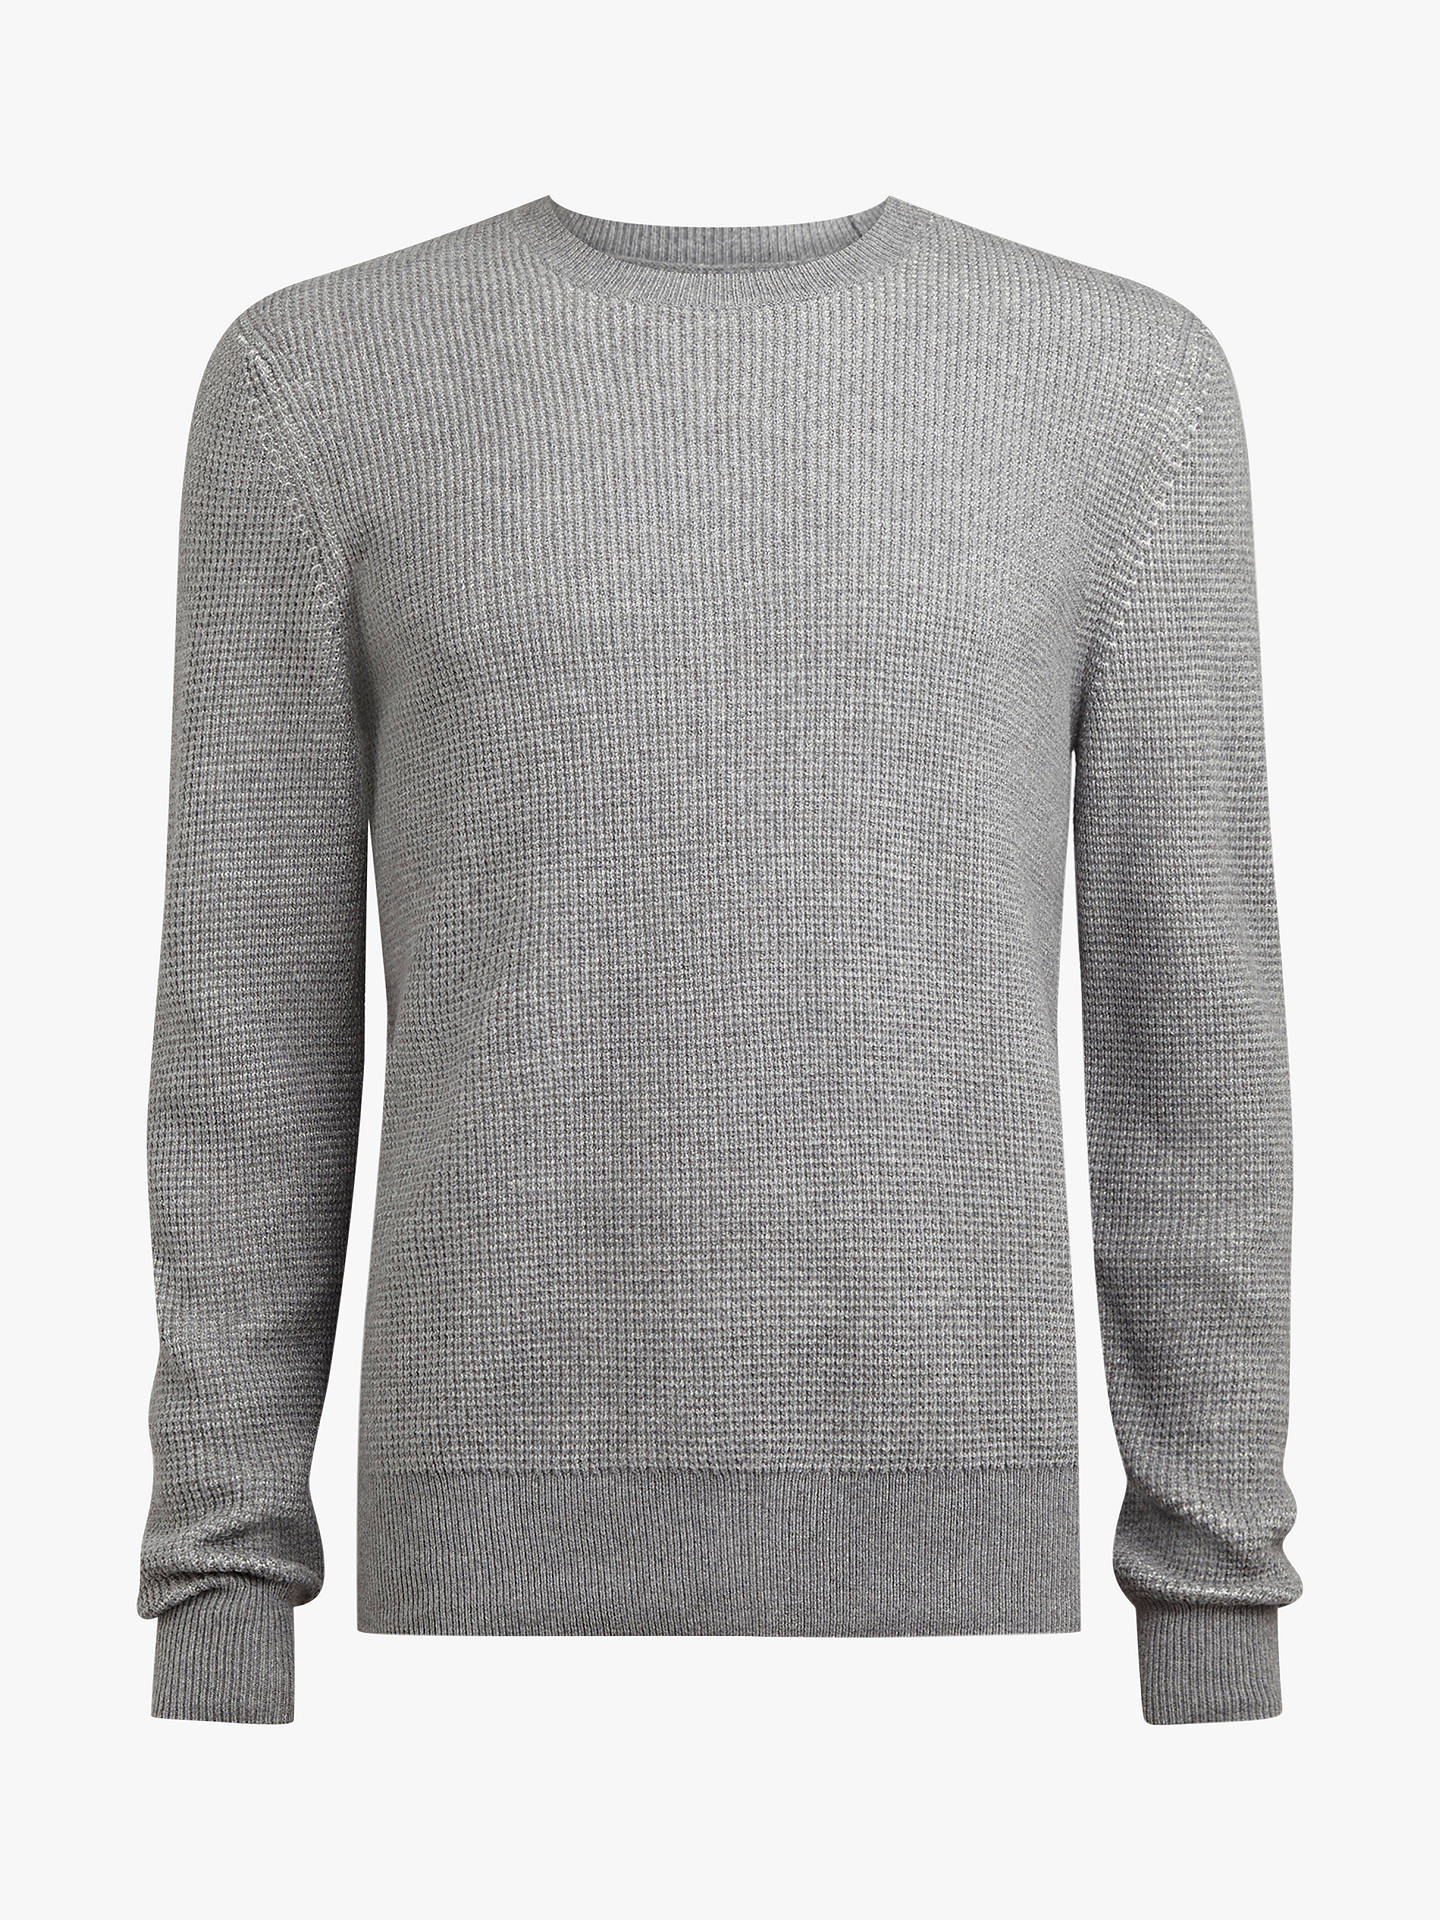 Buy AllSaints Natan Crew Jumper, Grey Marl, L Online at johnlewis.com